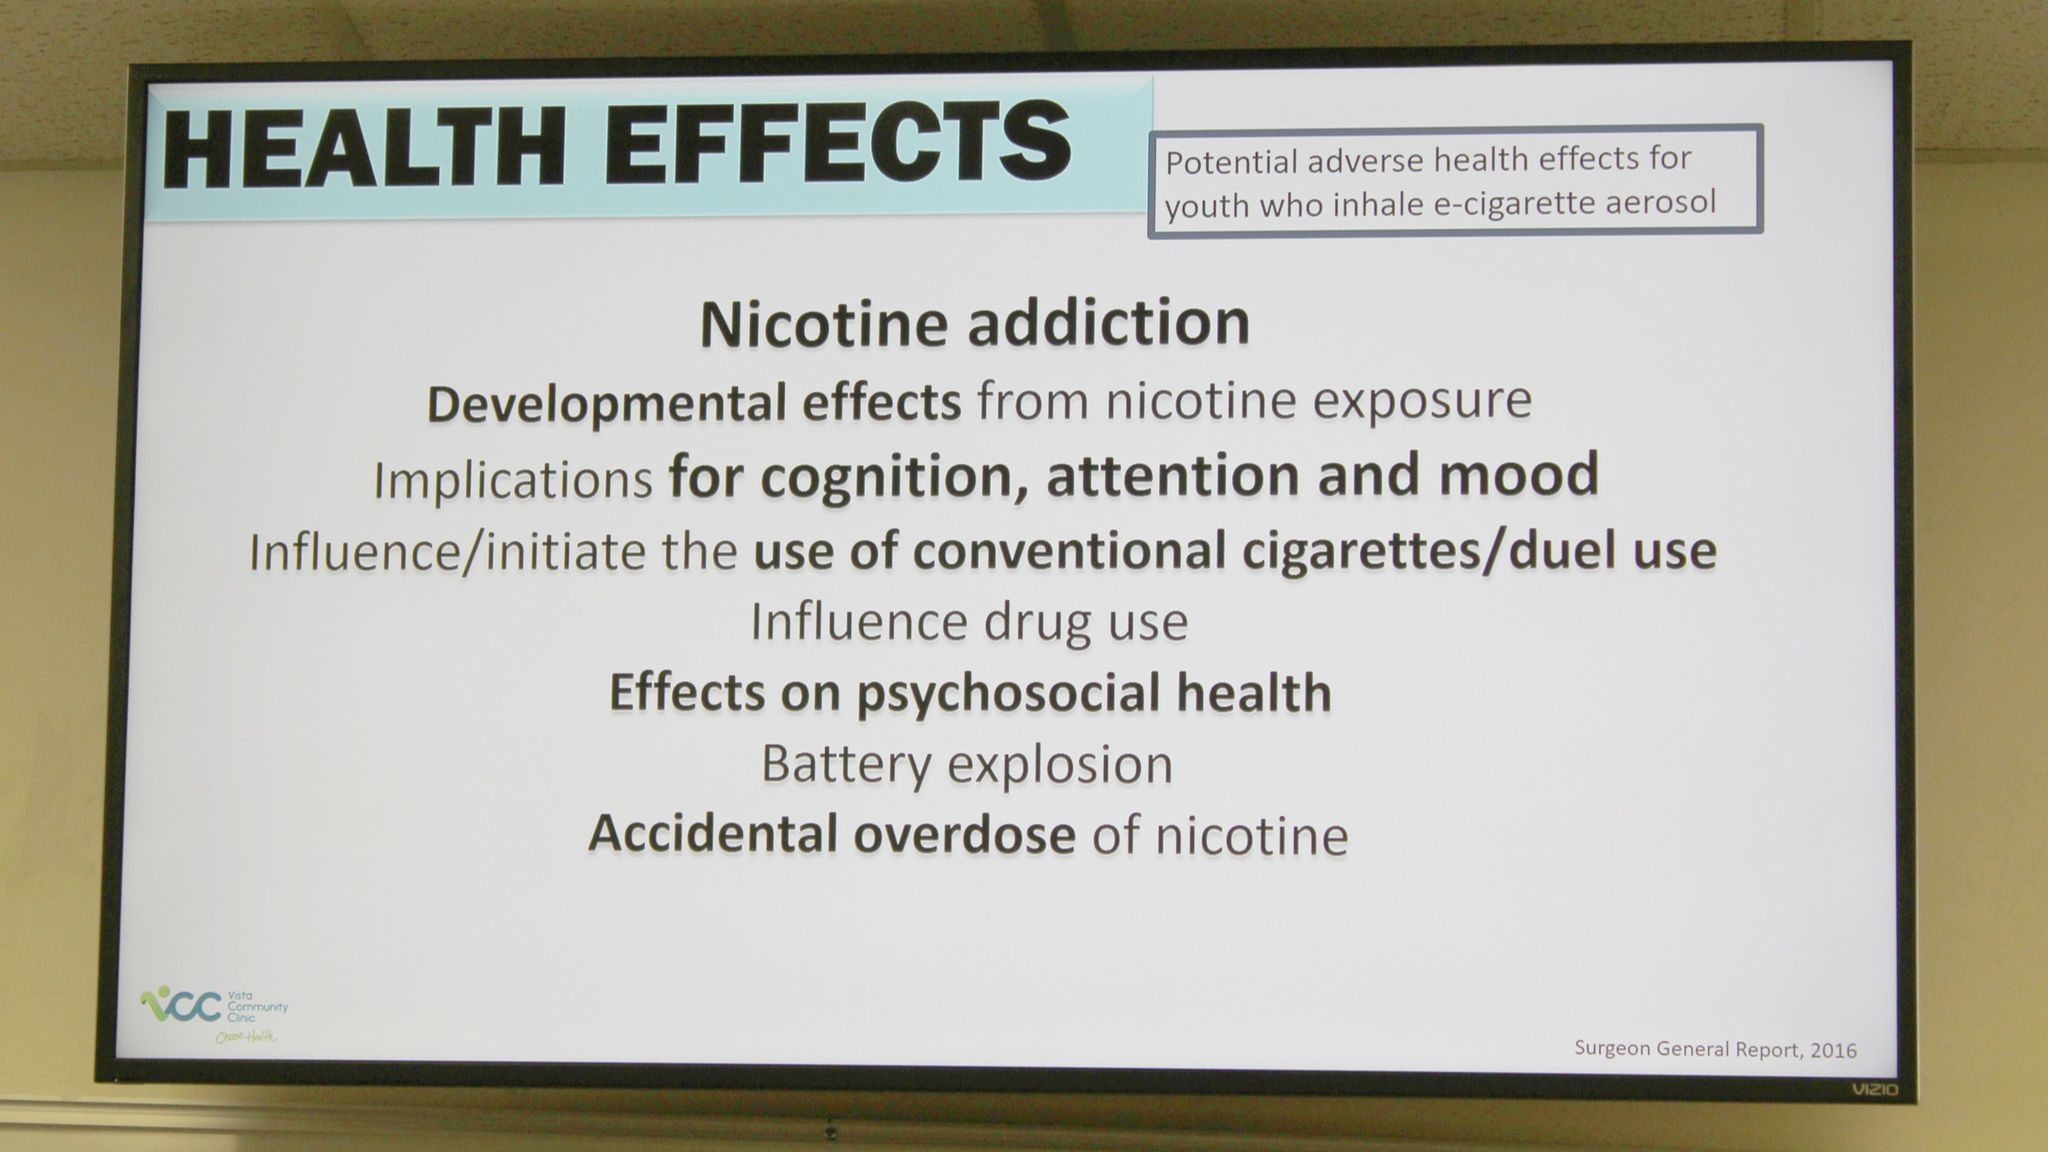 Health effects of nicotine addiction.